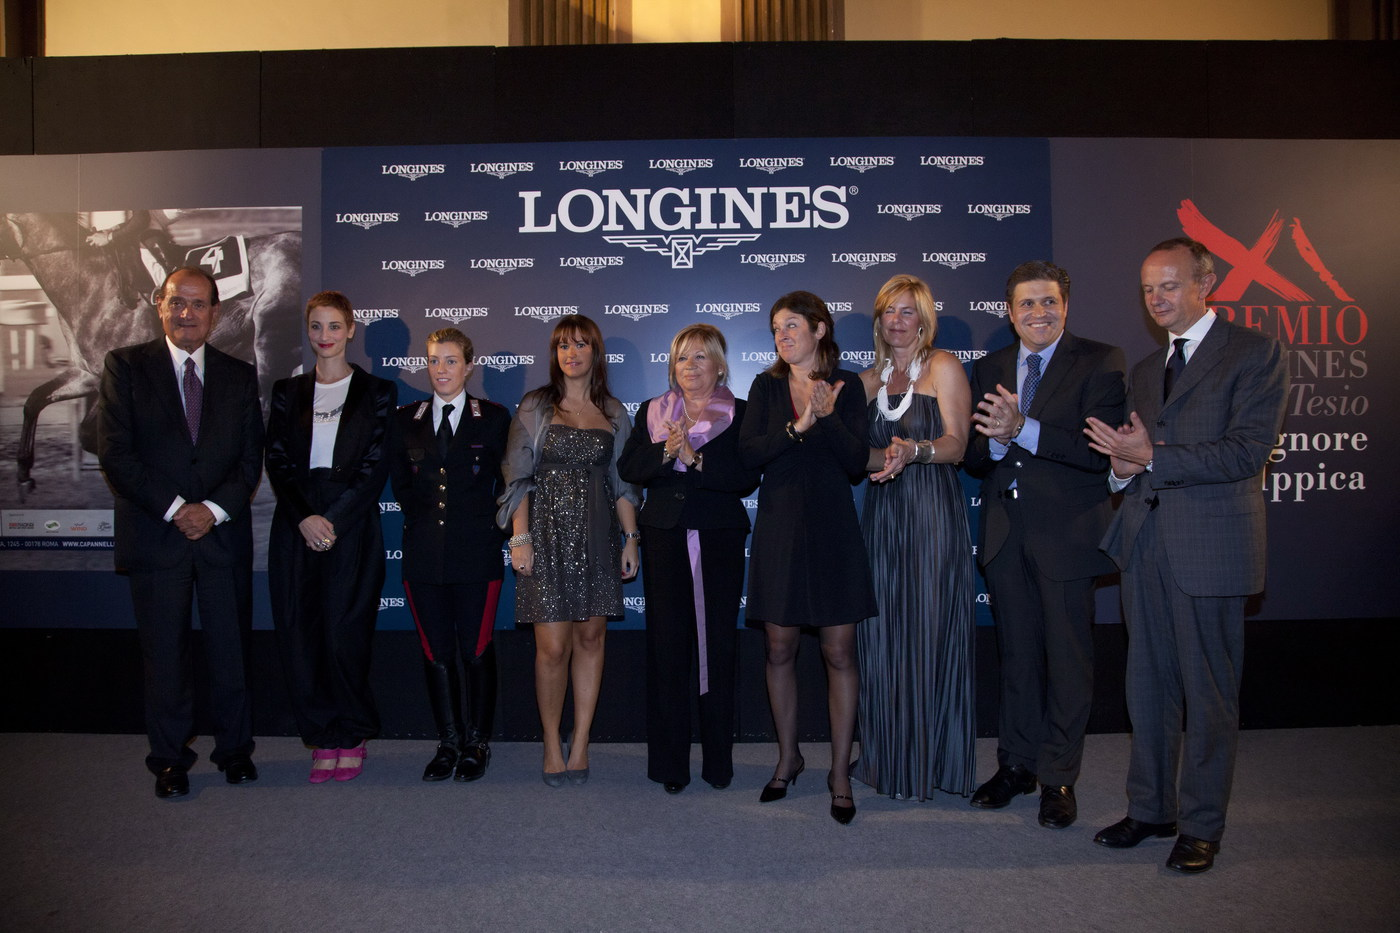 Longines Flat Racing Event: Fabio Branca wins the Grand Prix Longines Lydia Tesio on Quiza Quiza Quiza 7